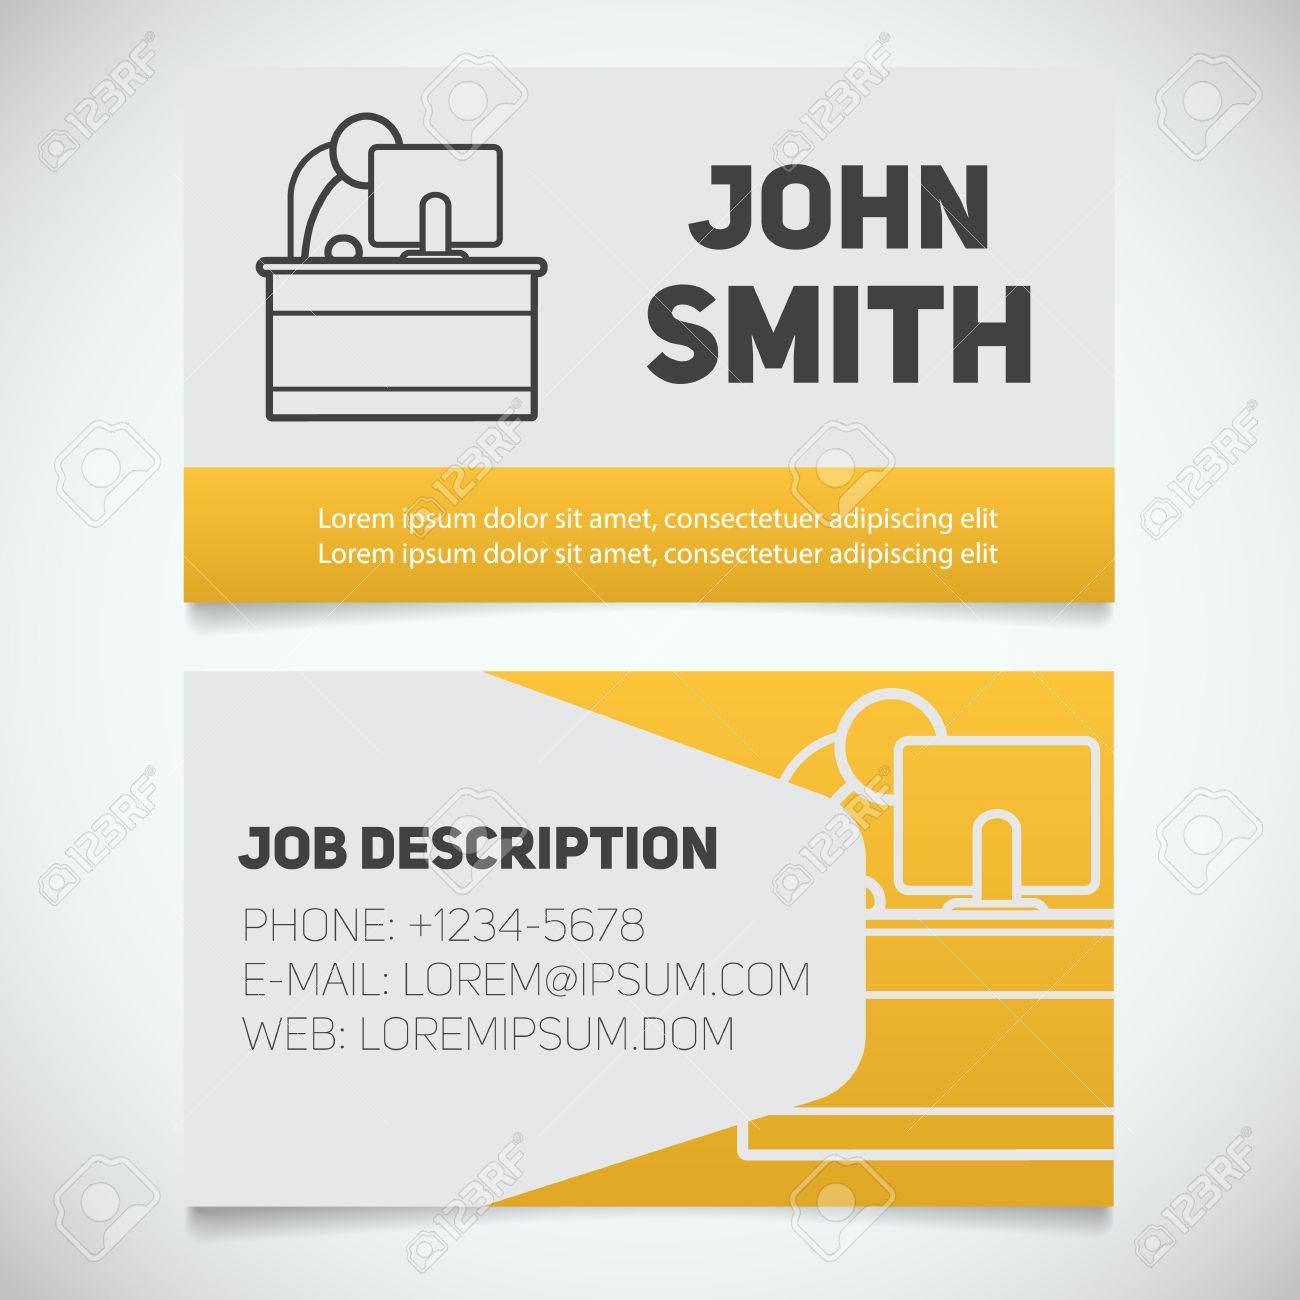 Officemax Business Card Printing Image collections - Free Business ...